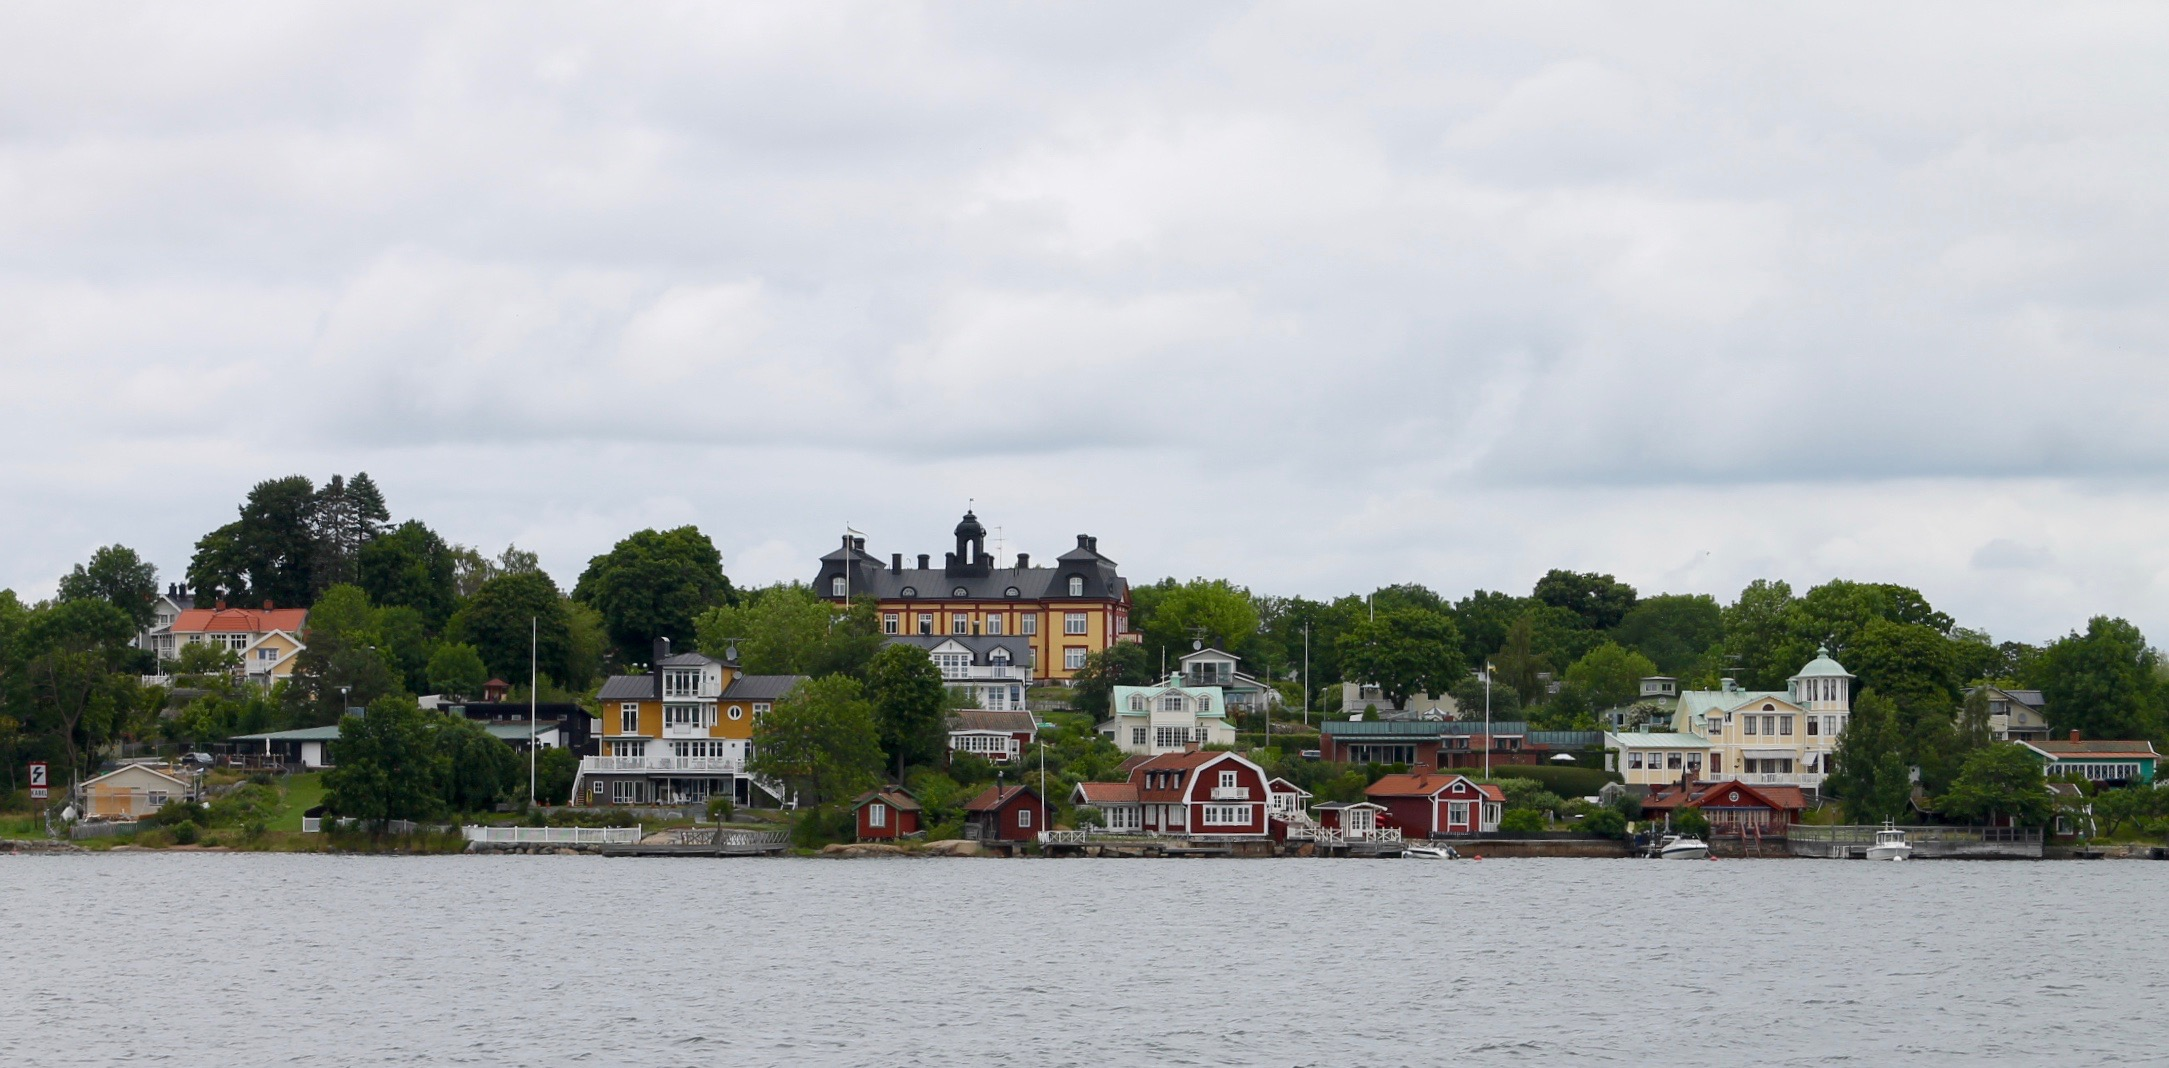 View of Vaxholm from the water